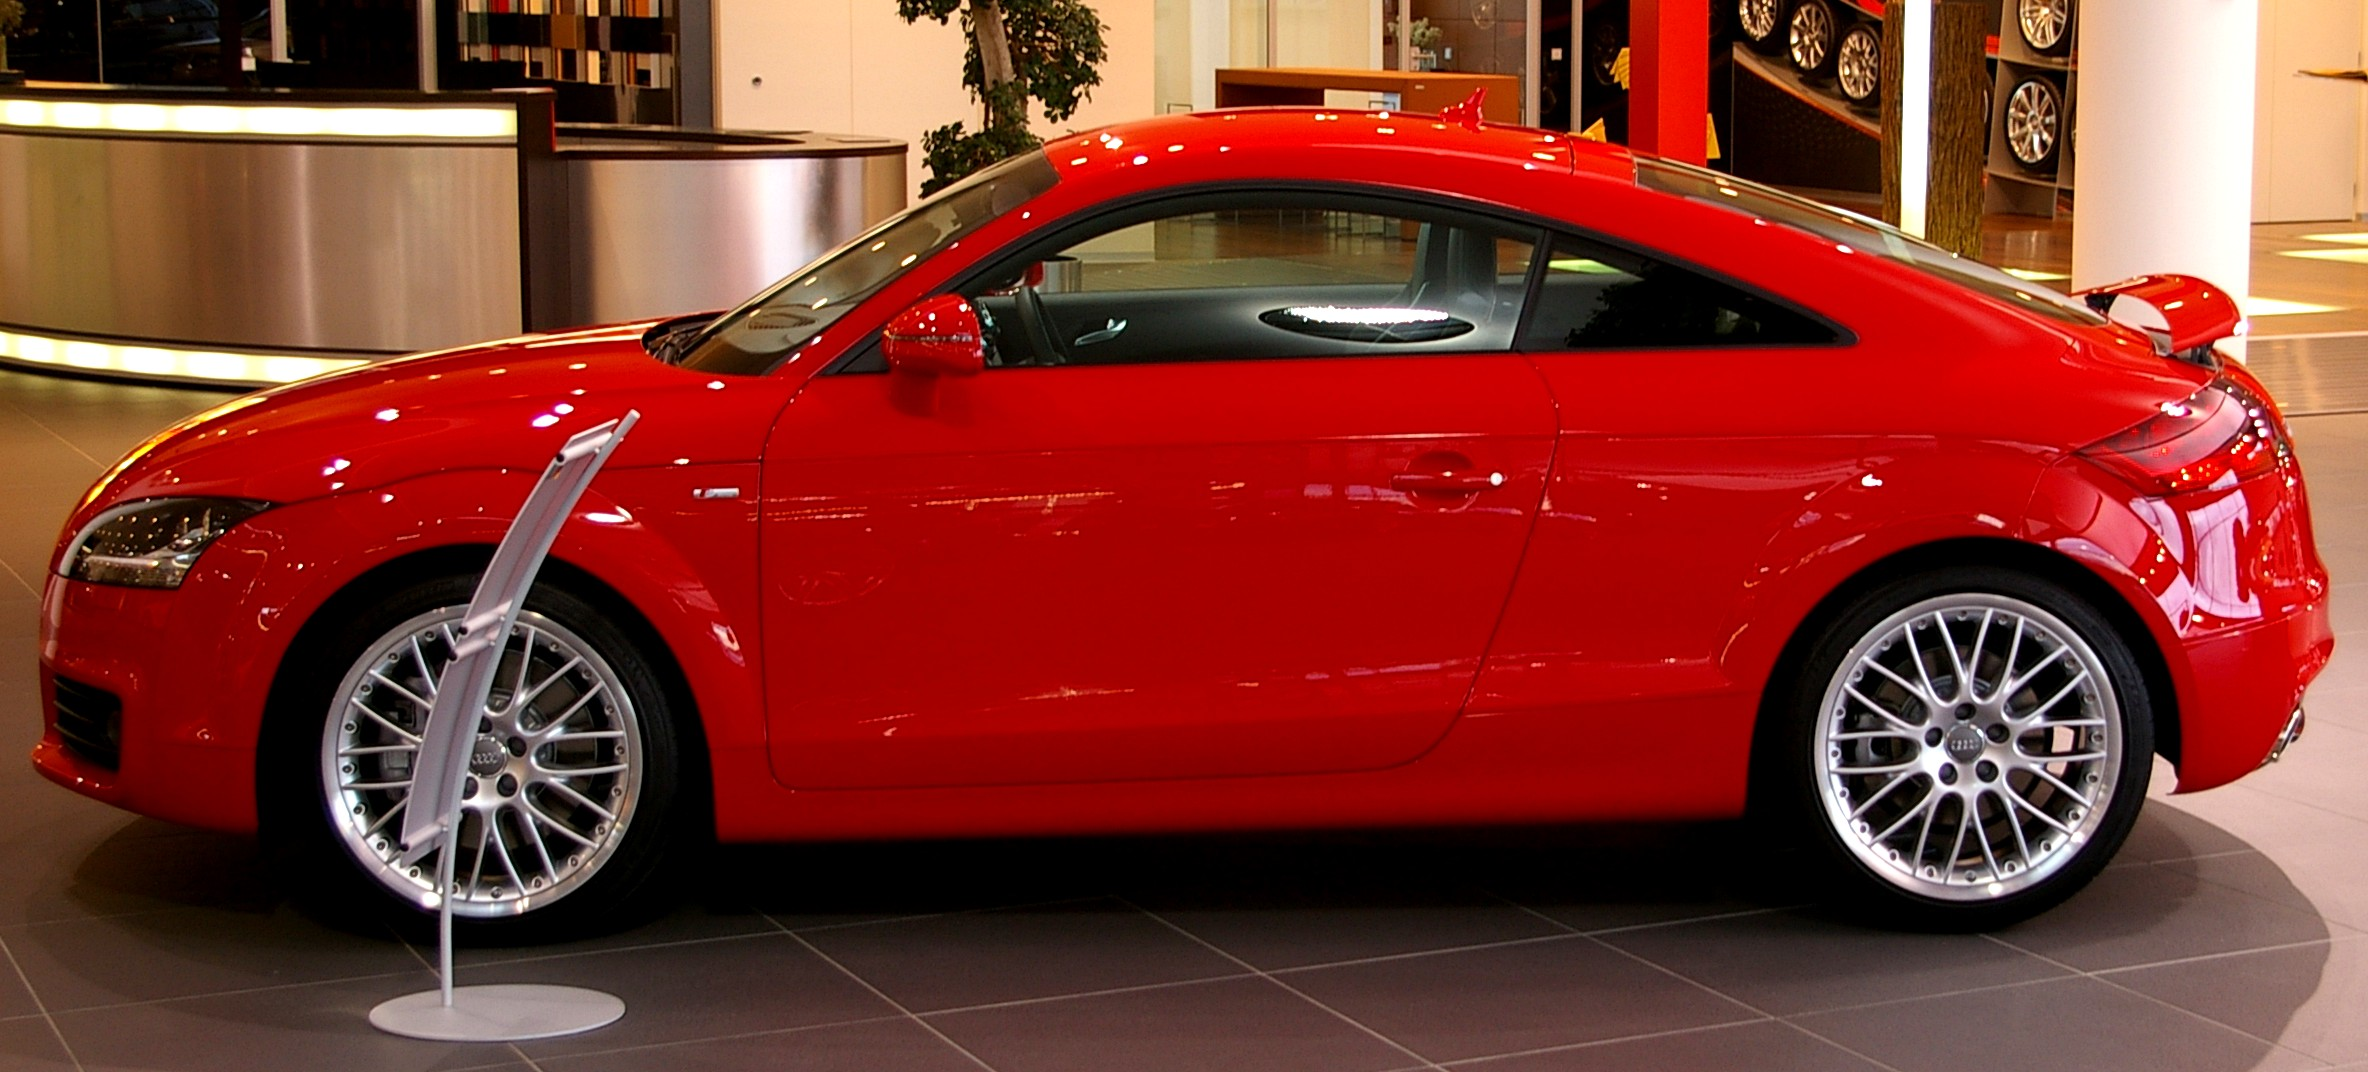 Datei Audi Tt Coupe Rot Jpg Wikipedia